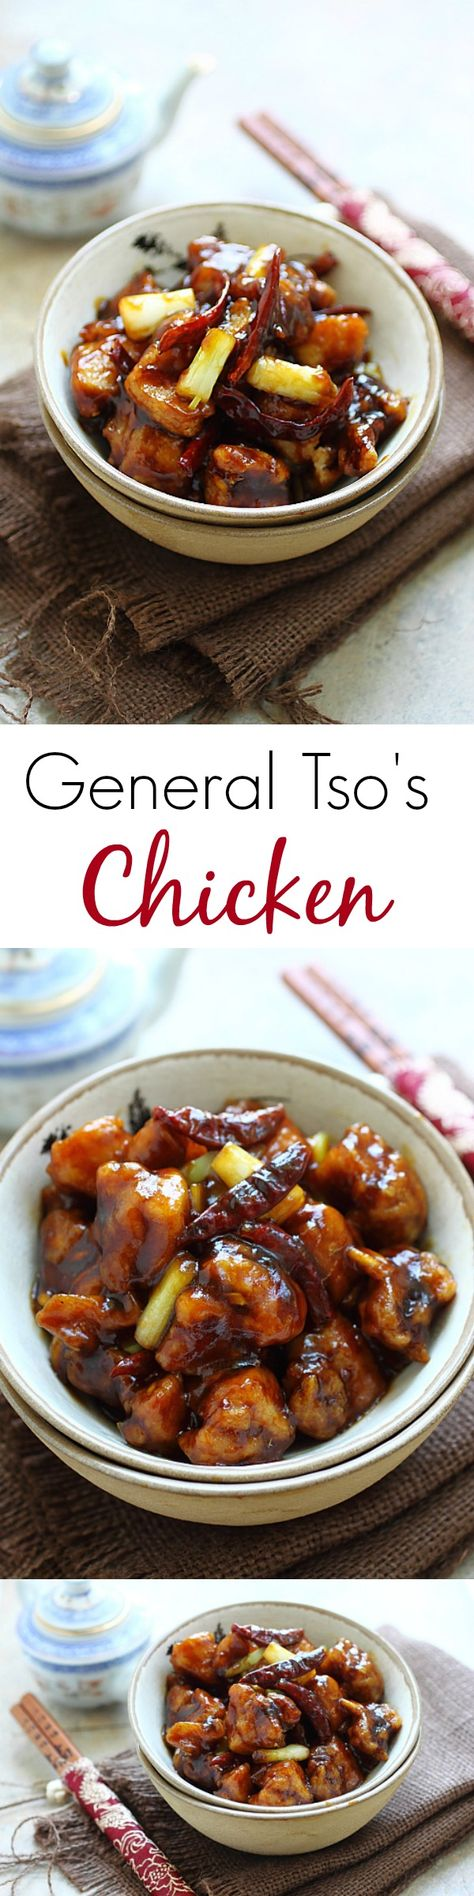 China - General Tso's chicken – BEST and easiest homemade General Tso's Chicken ever. Crazy delicious and a zillion times healthier and better than takeout!!   rasamalaysia.com